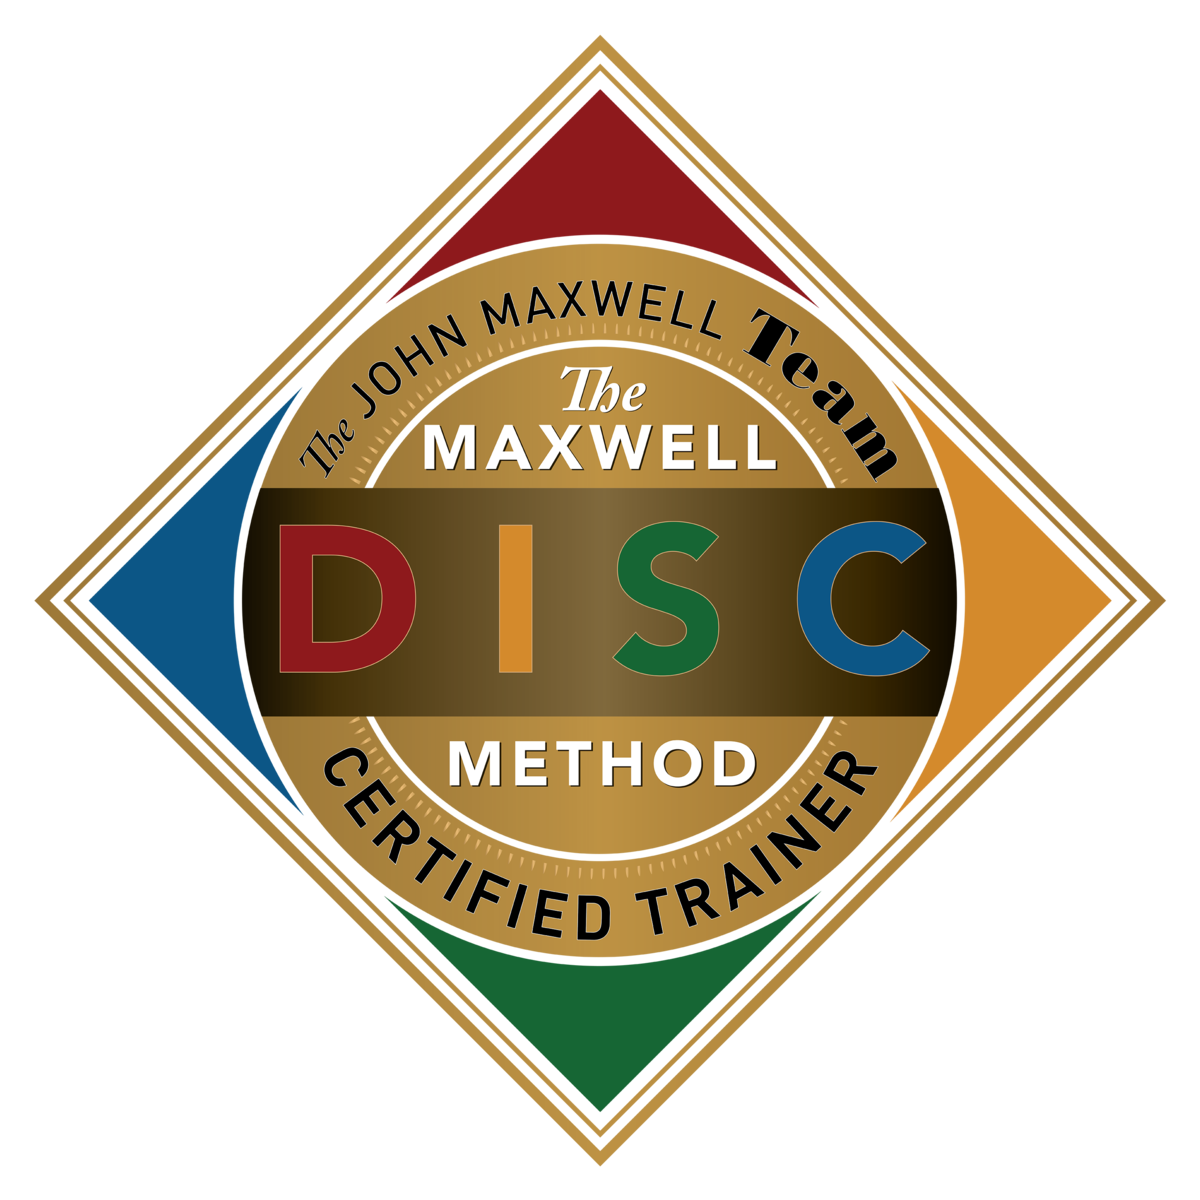 The John Maxwell Team DISC Method Certified Trainer Fredie C. Smith